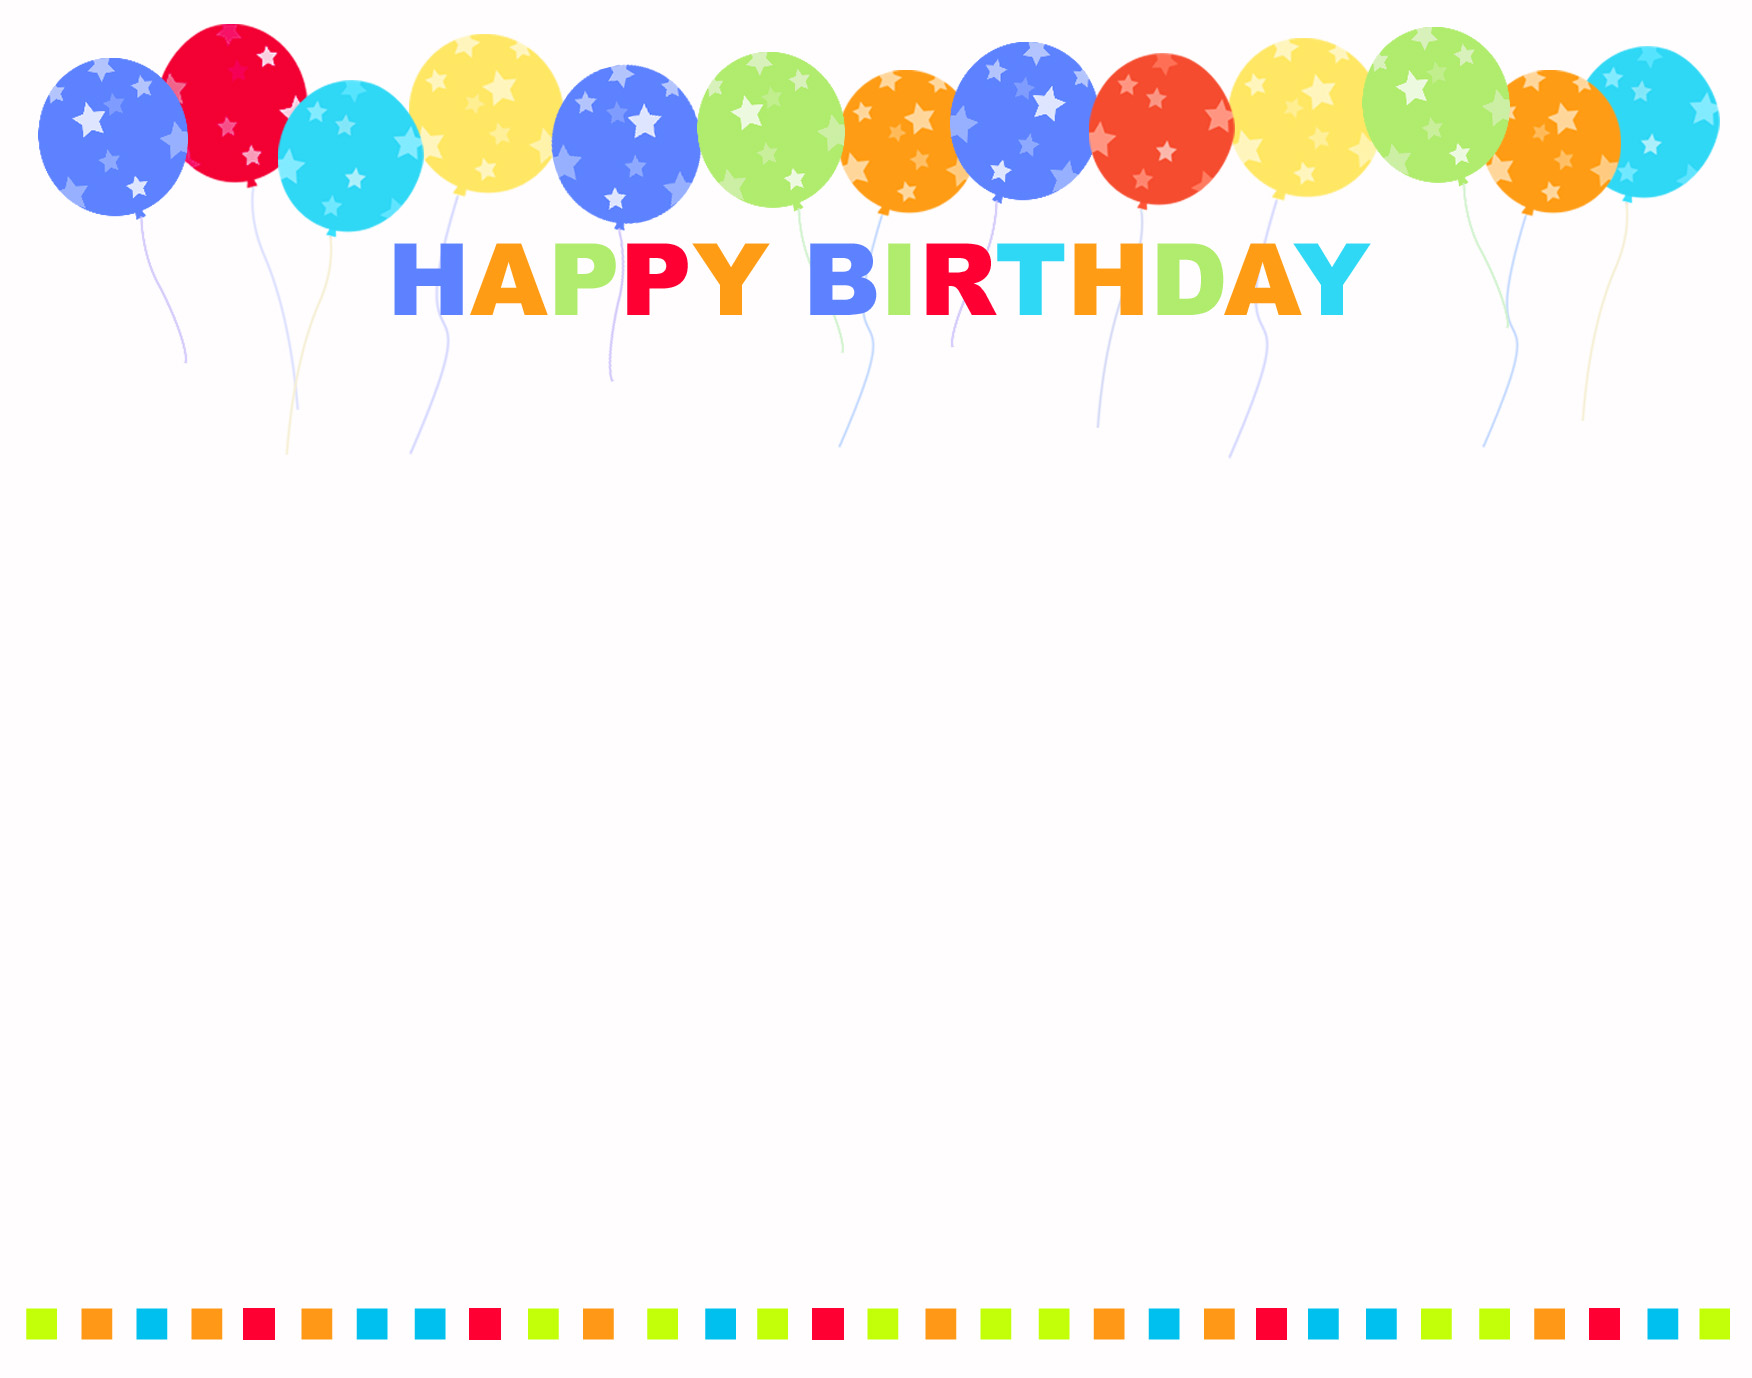 birthday background wallpapers hd ; happy-birthday-wallpaper-hd-hd-wallpapers-backgrounds-images-22